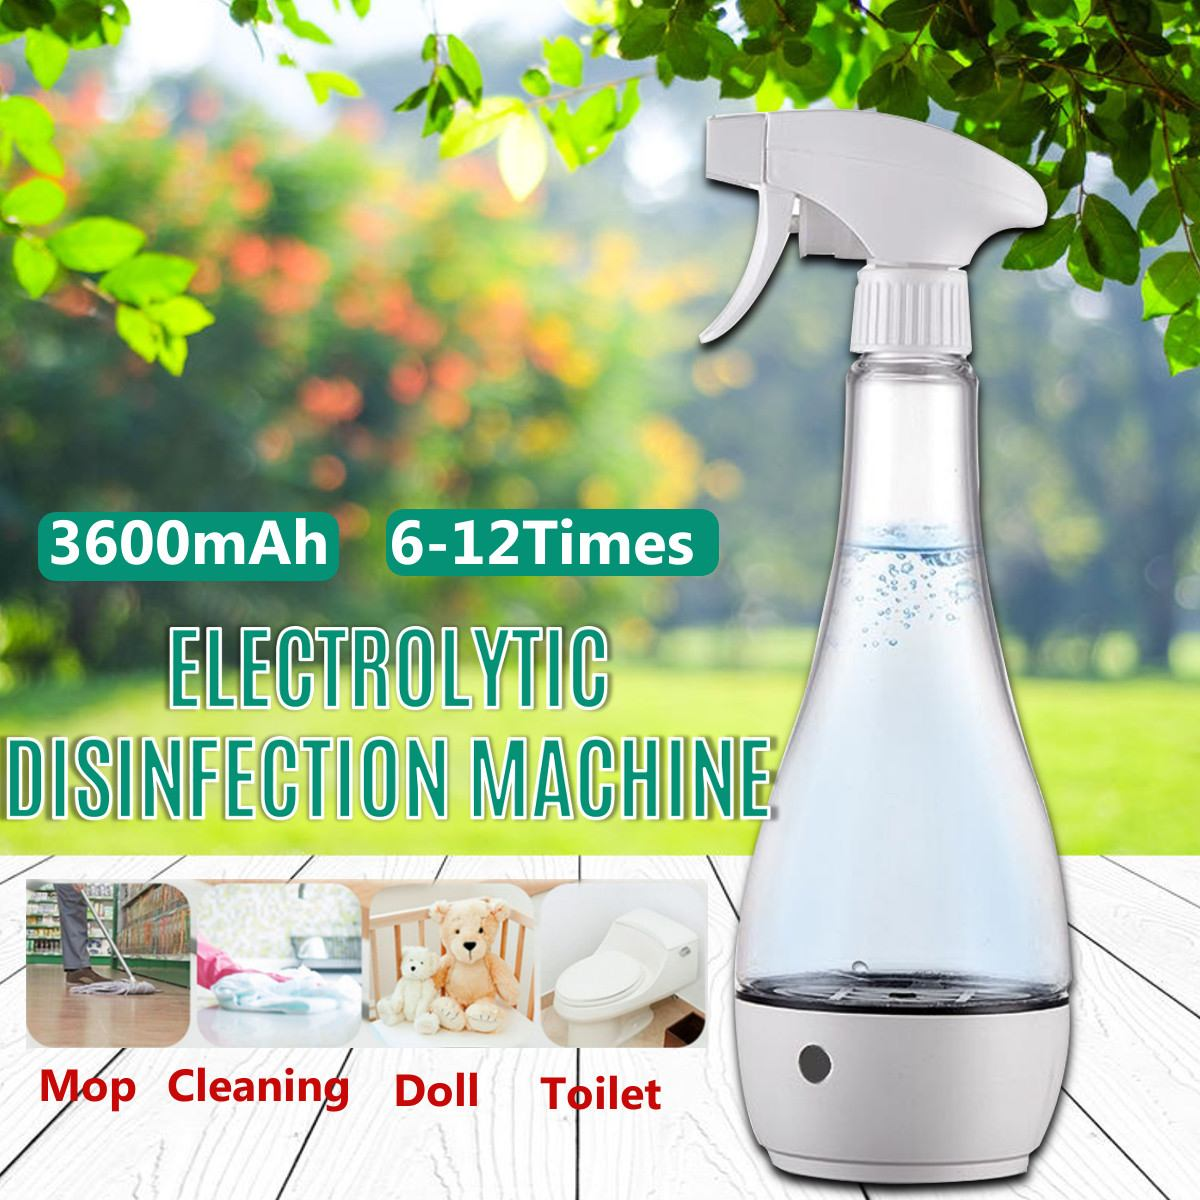 Portable USB 84 Disinfection Water Electrolytic Disinfection Machine Hypochlorous Acid Disinfection Water Maker Home Supplies